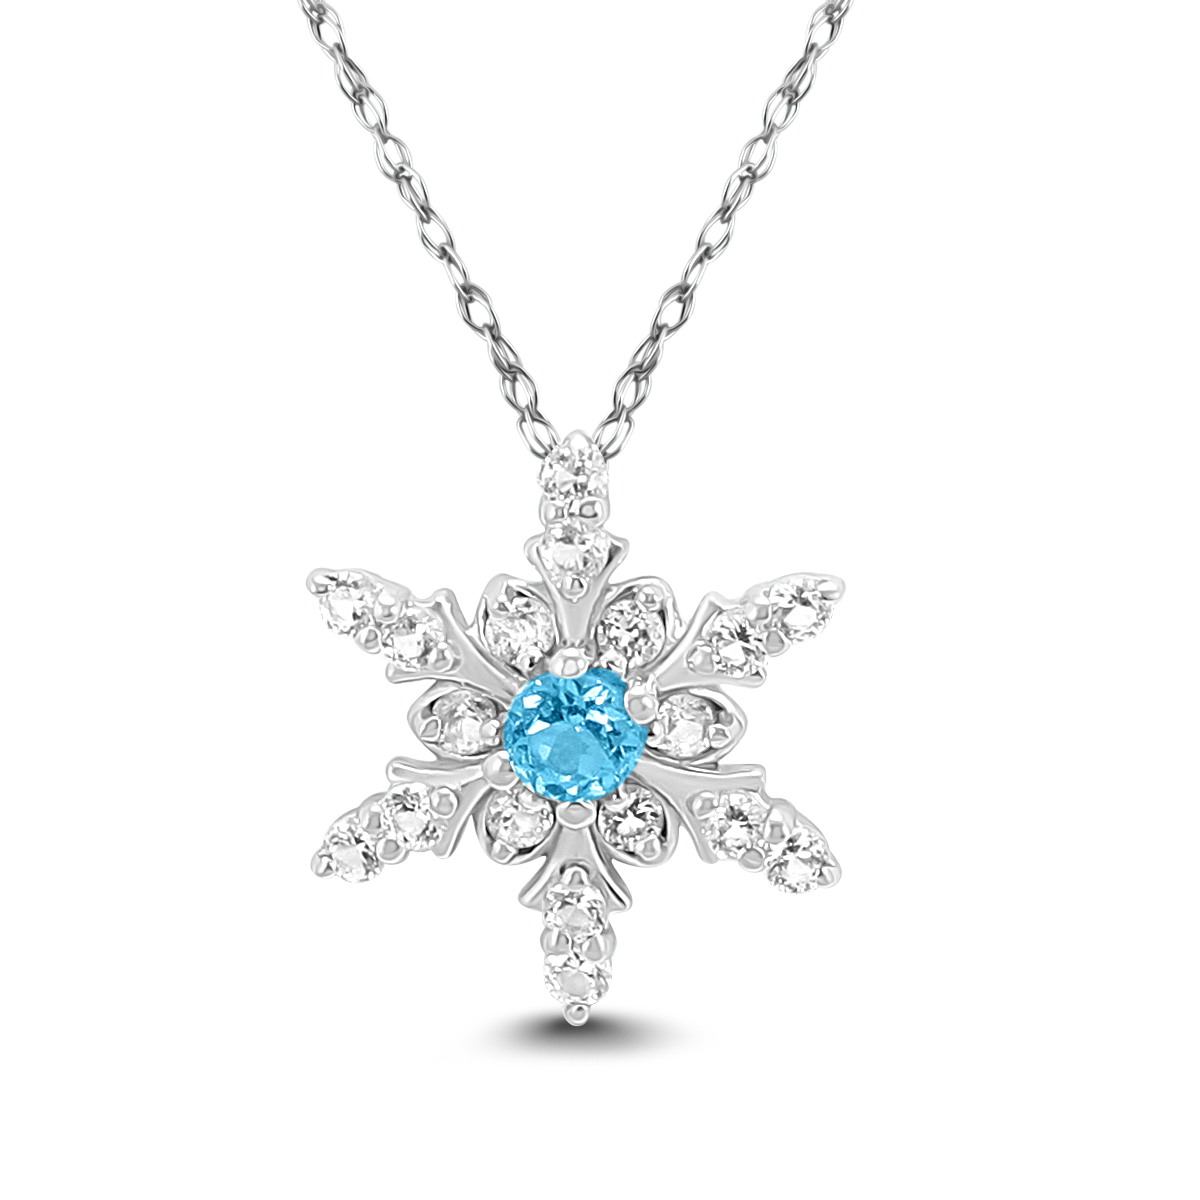 A stunning snowflake pendant set with natural white topaz gemstones along with a center genuine blue topaz. The pendant is crafted in .925 sterling silver and hangs from an 18 inch chain. A sparkling beauty sure to be treasured forever.